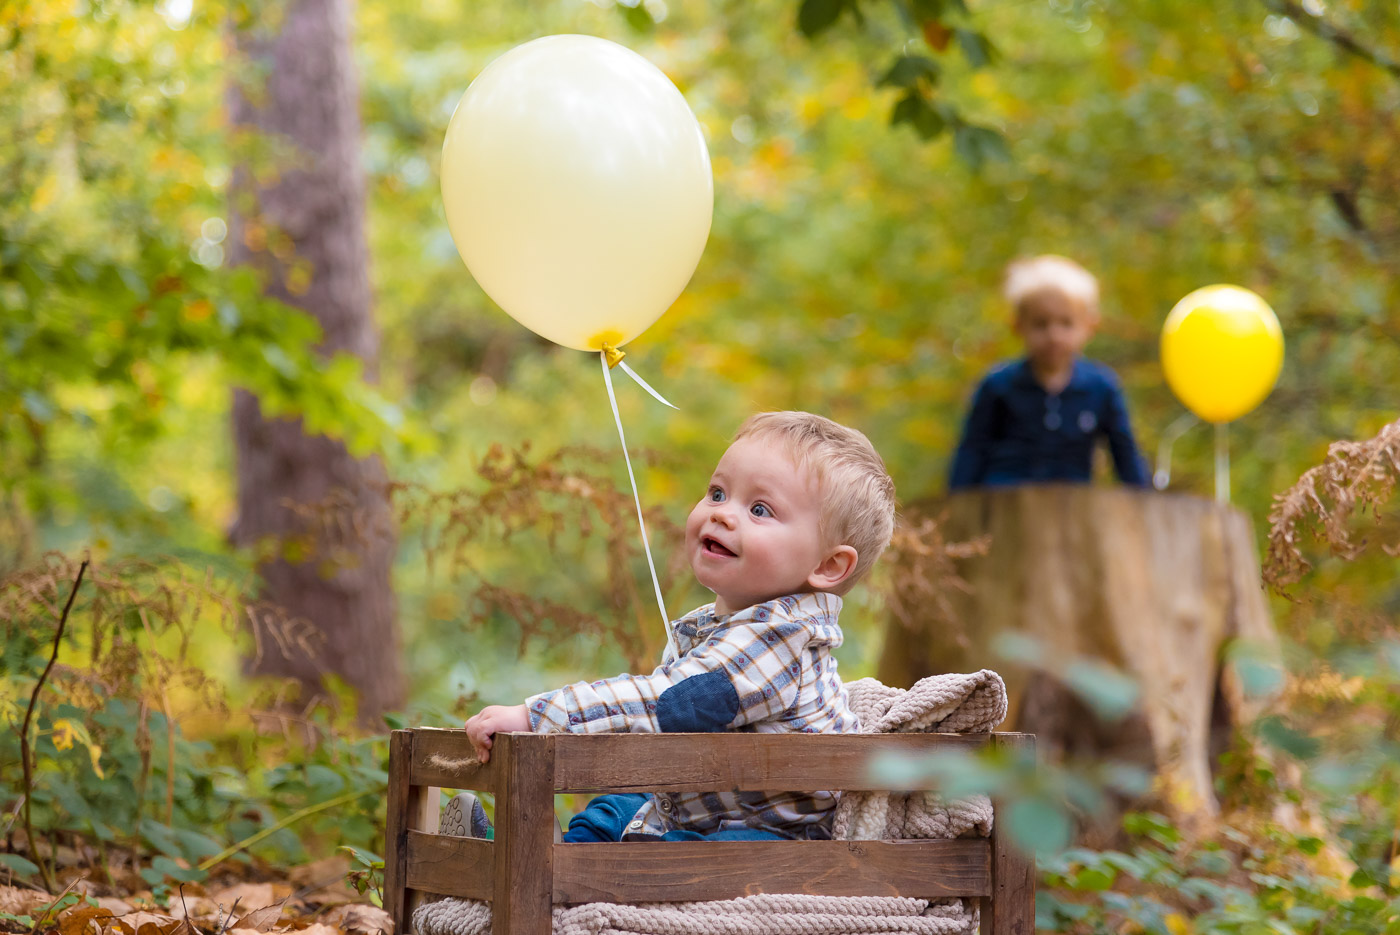 Smiling little boy in a crate holds the balloon while his brother in the background is watching